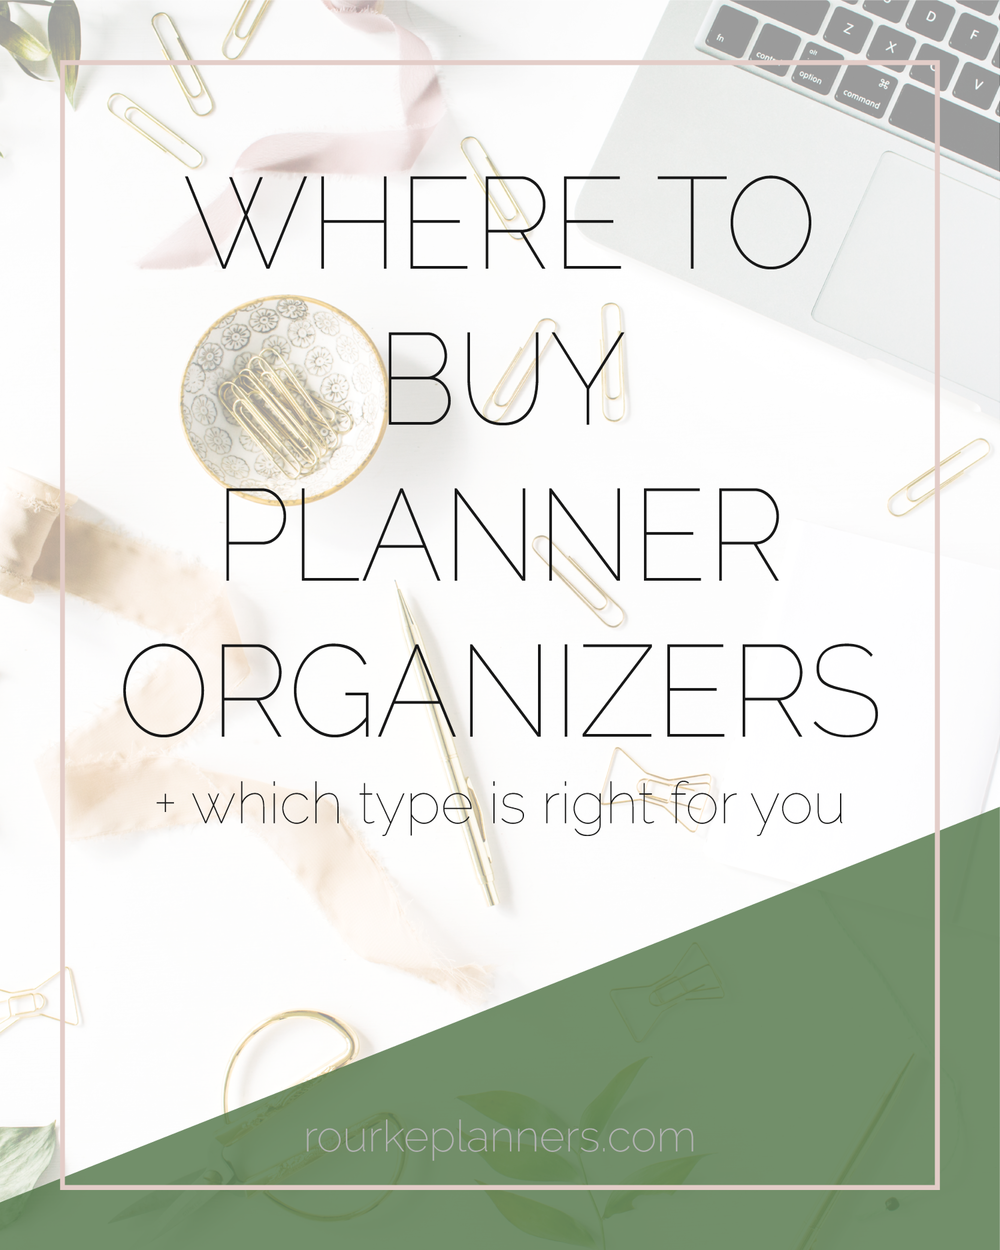 Where to Buy Planner Organizers | Rourke Planners